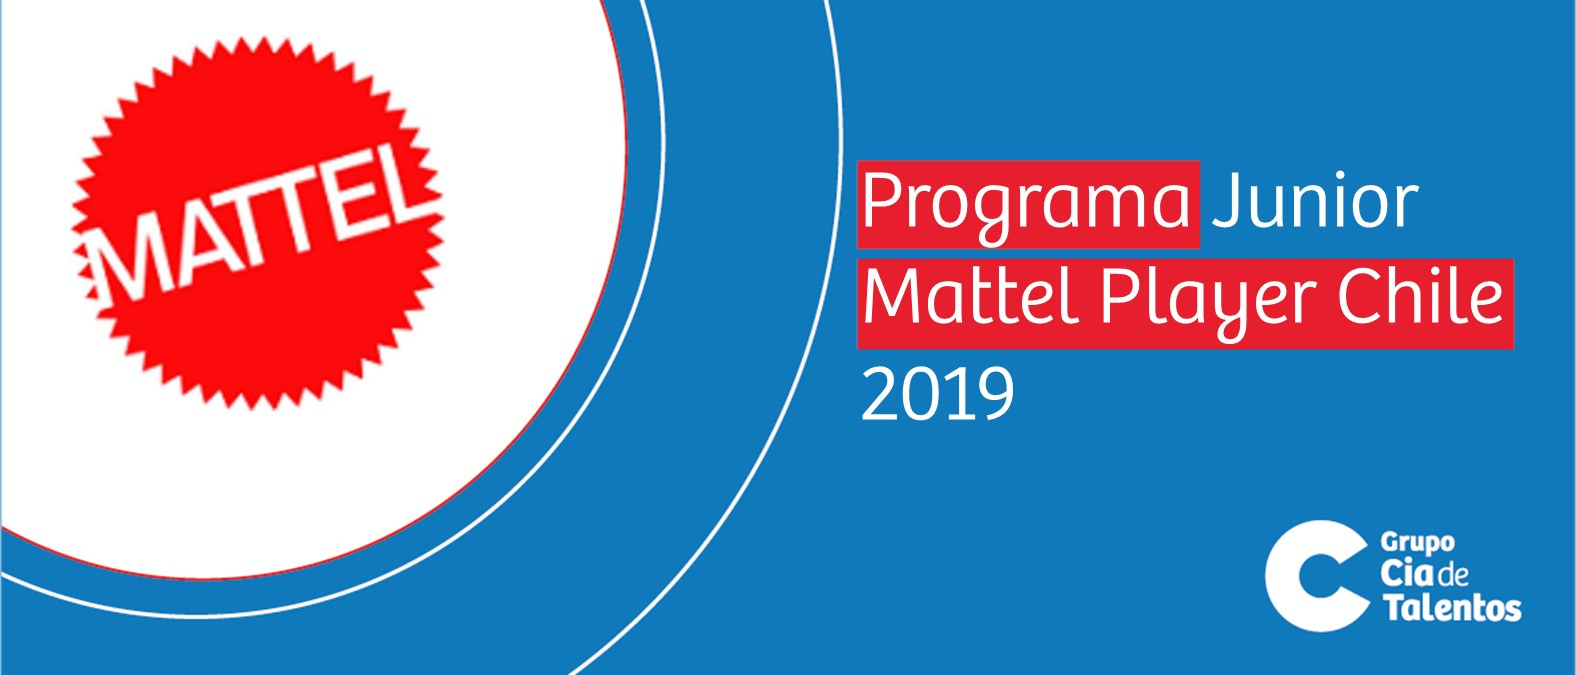 Programa Junior Mattel Player Chile 2019